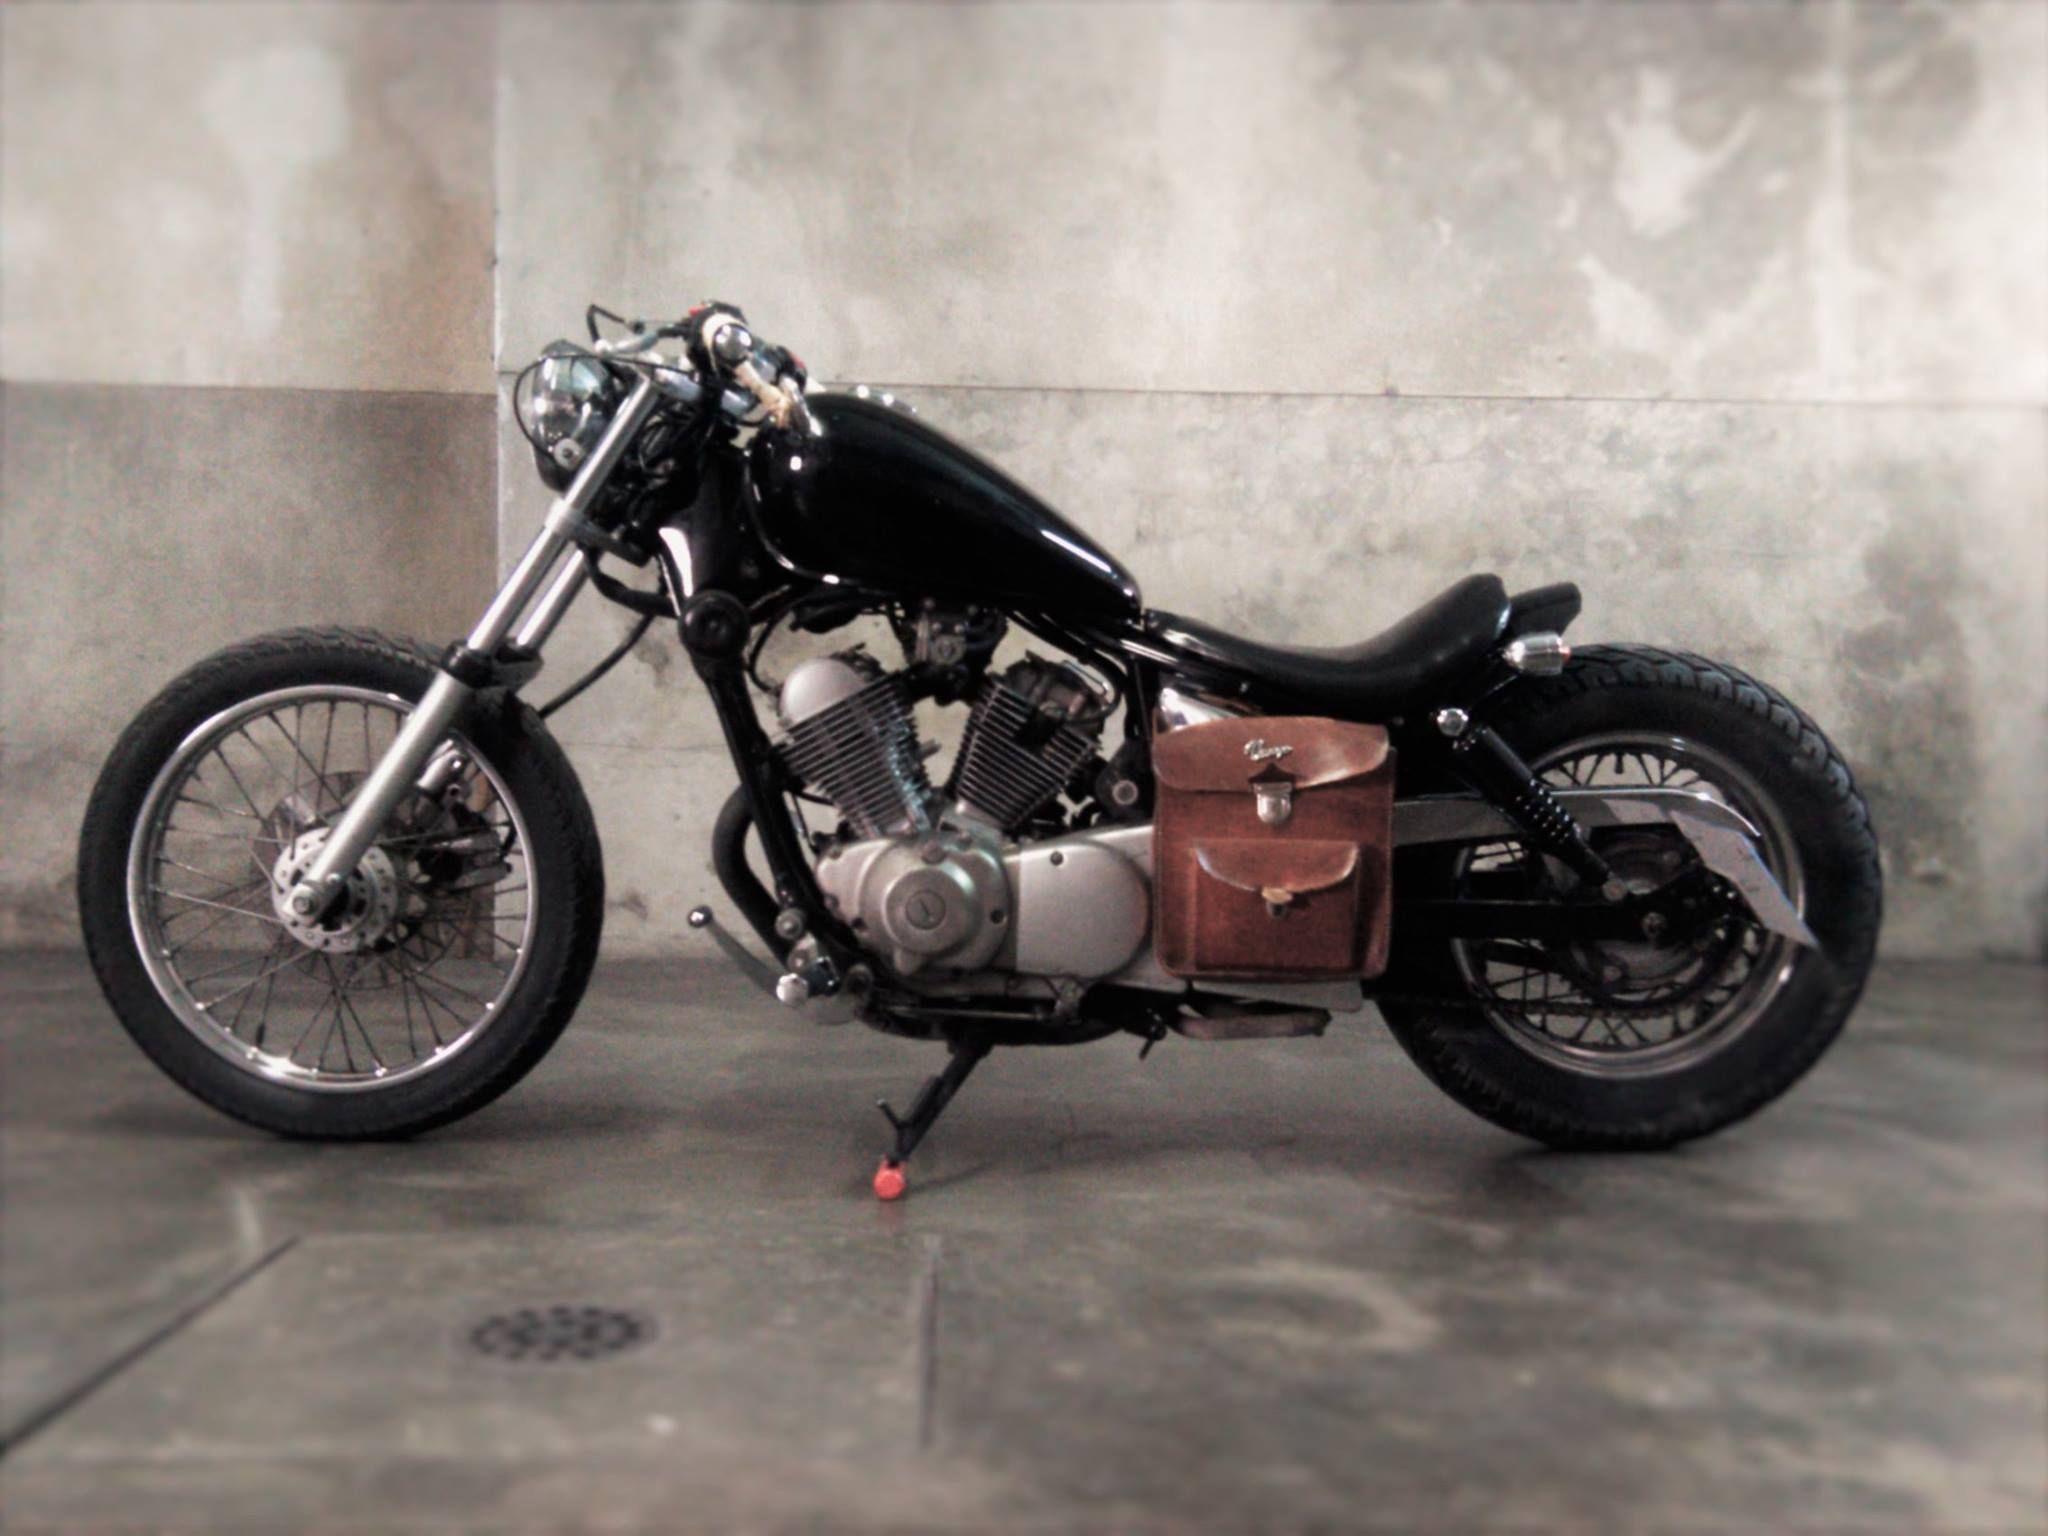 virago 250 bobber yamaha virago pinterest bobbers. Black Bedroom Furniture Sets. Home Design Ideas